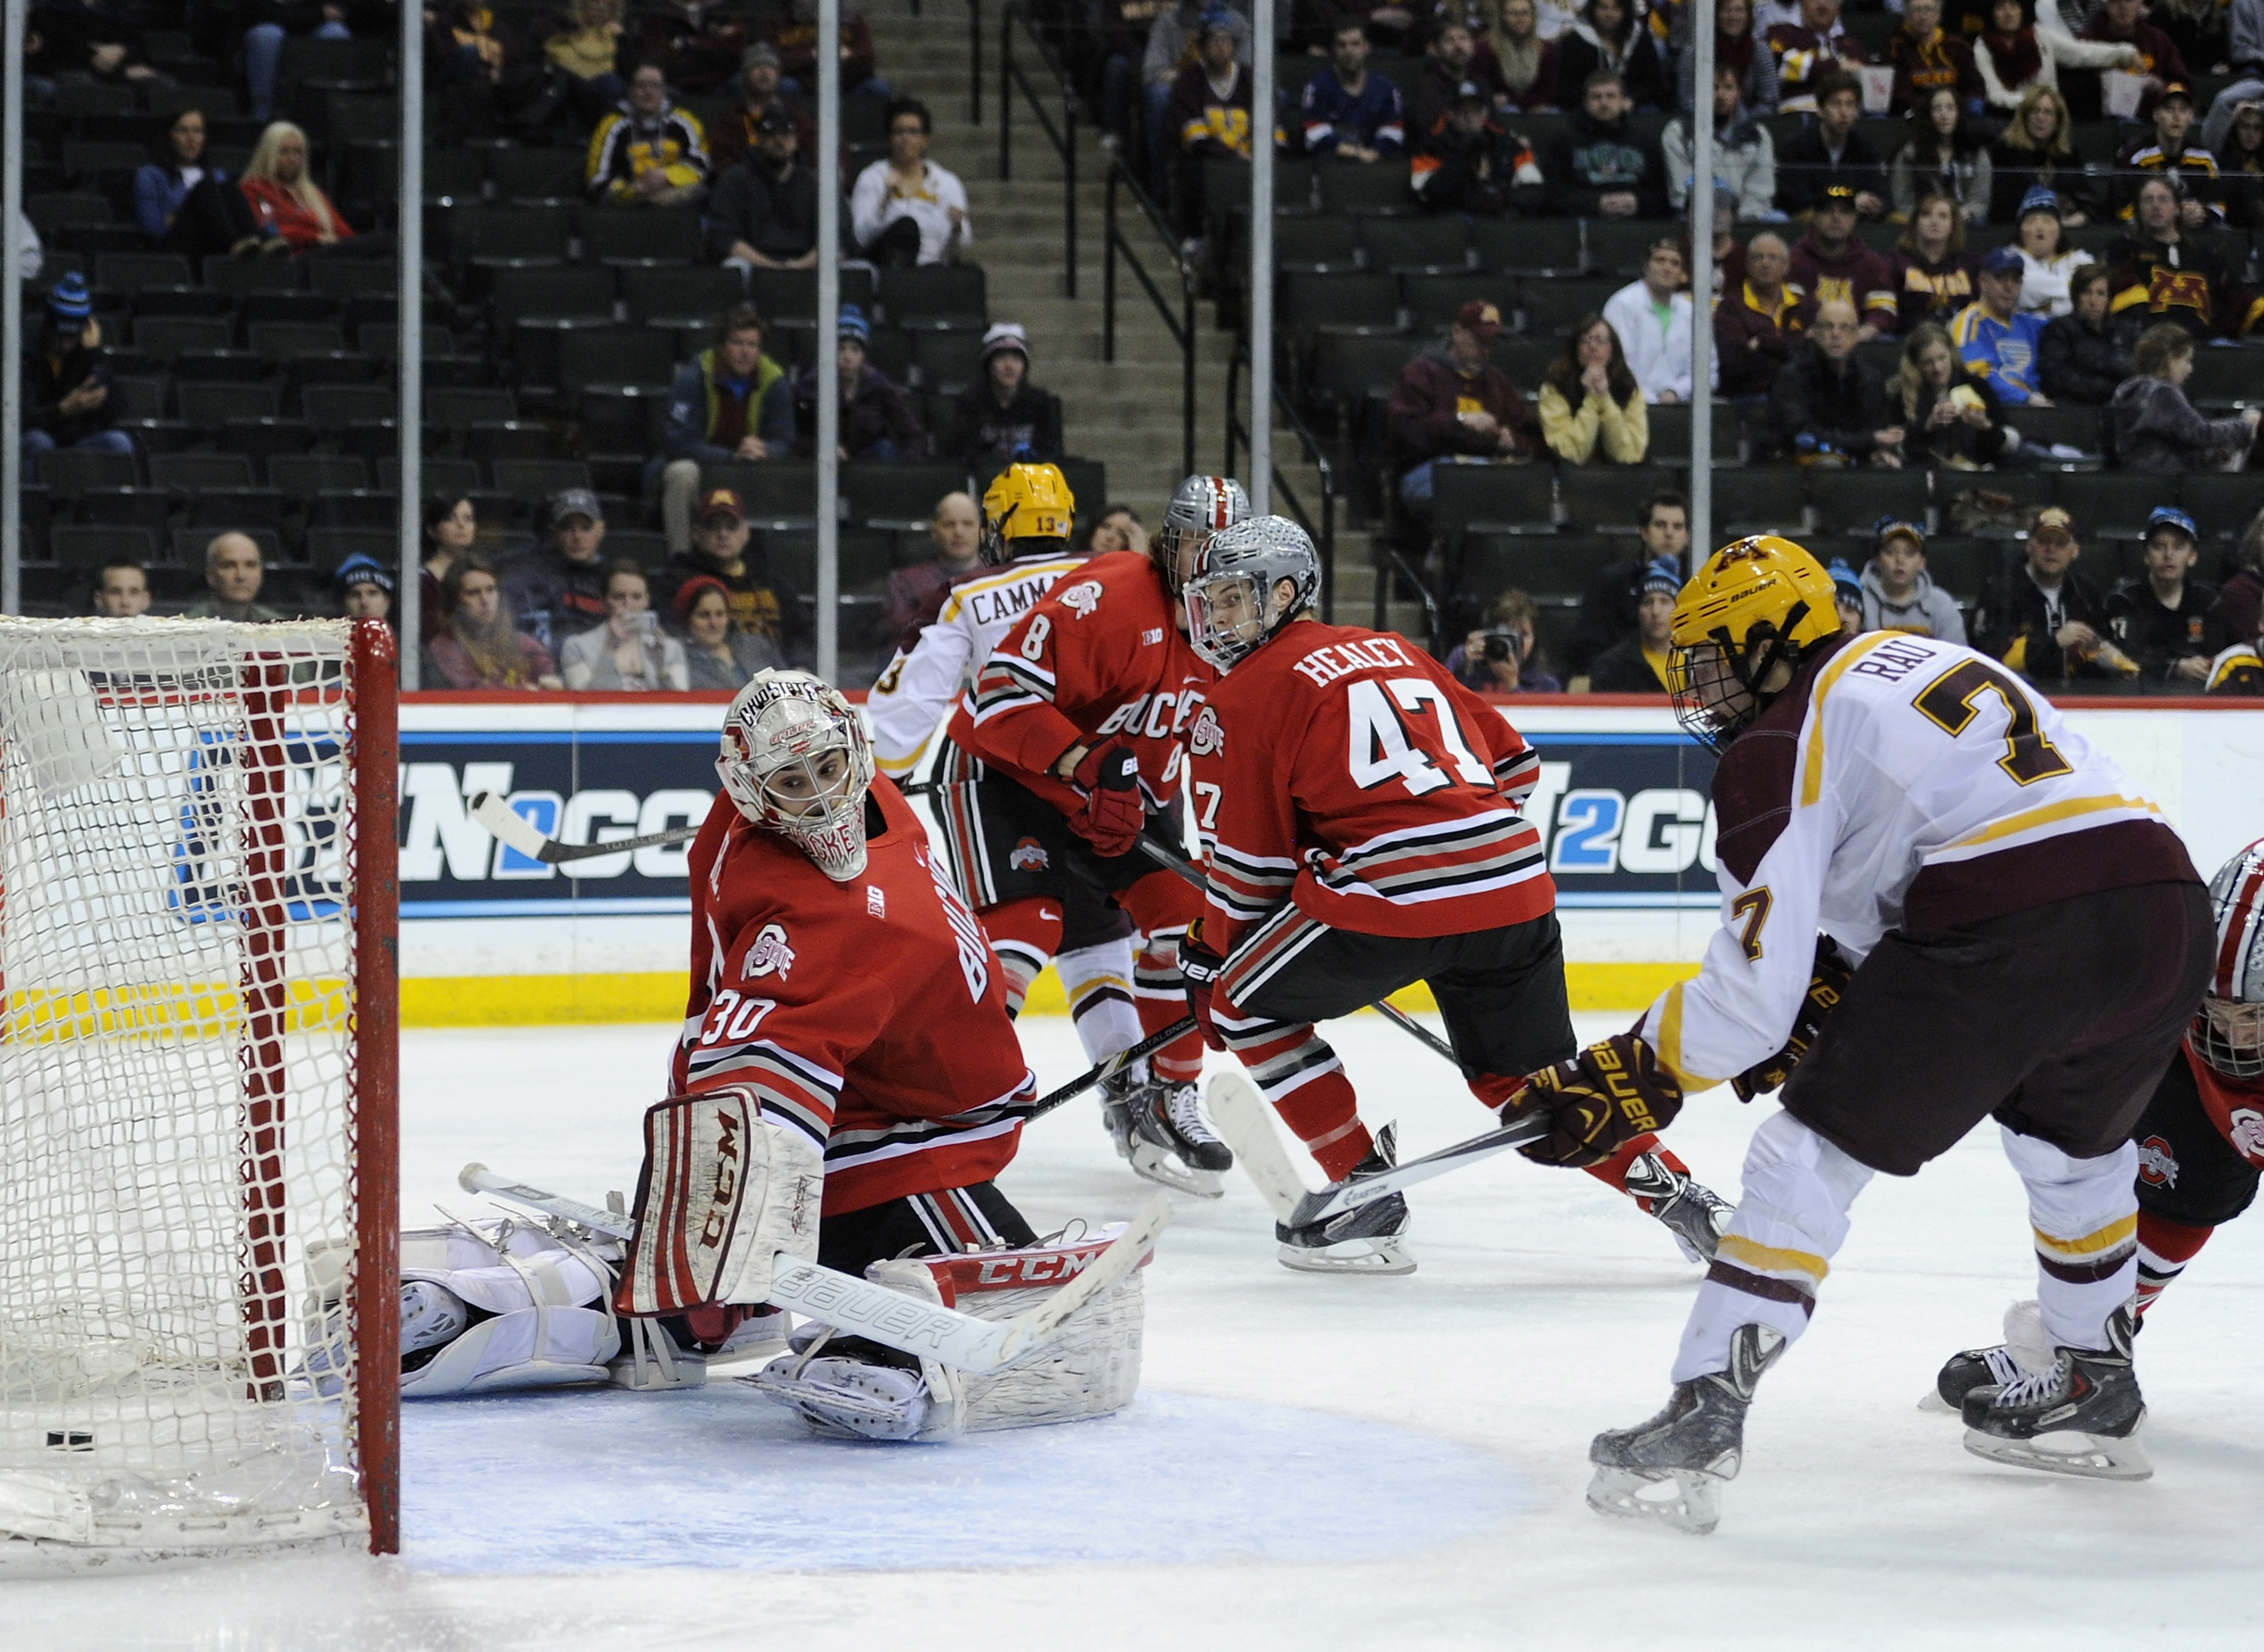 NCAA: No. 10 Ohio State Falls To Arizona State In A Shootout, 1-0